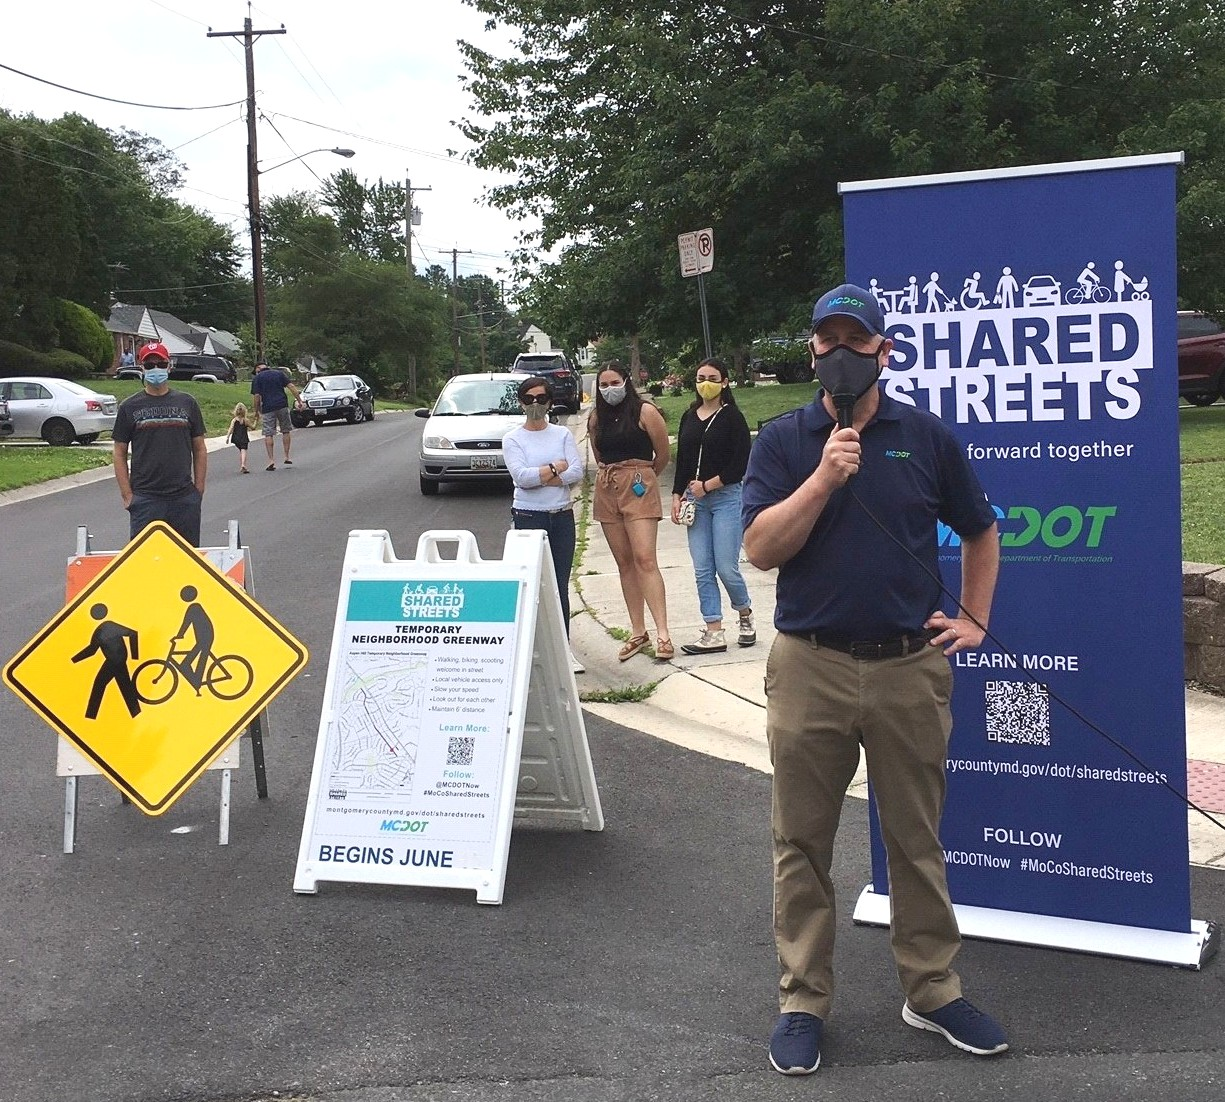 Chris Conklin, MCDOT Director, at MCDOT's Shared Streets intitiative